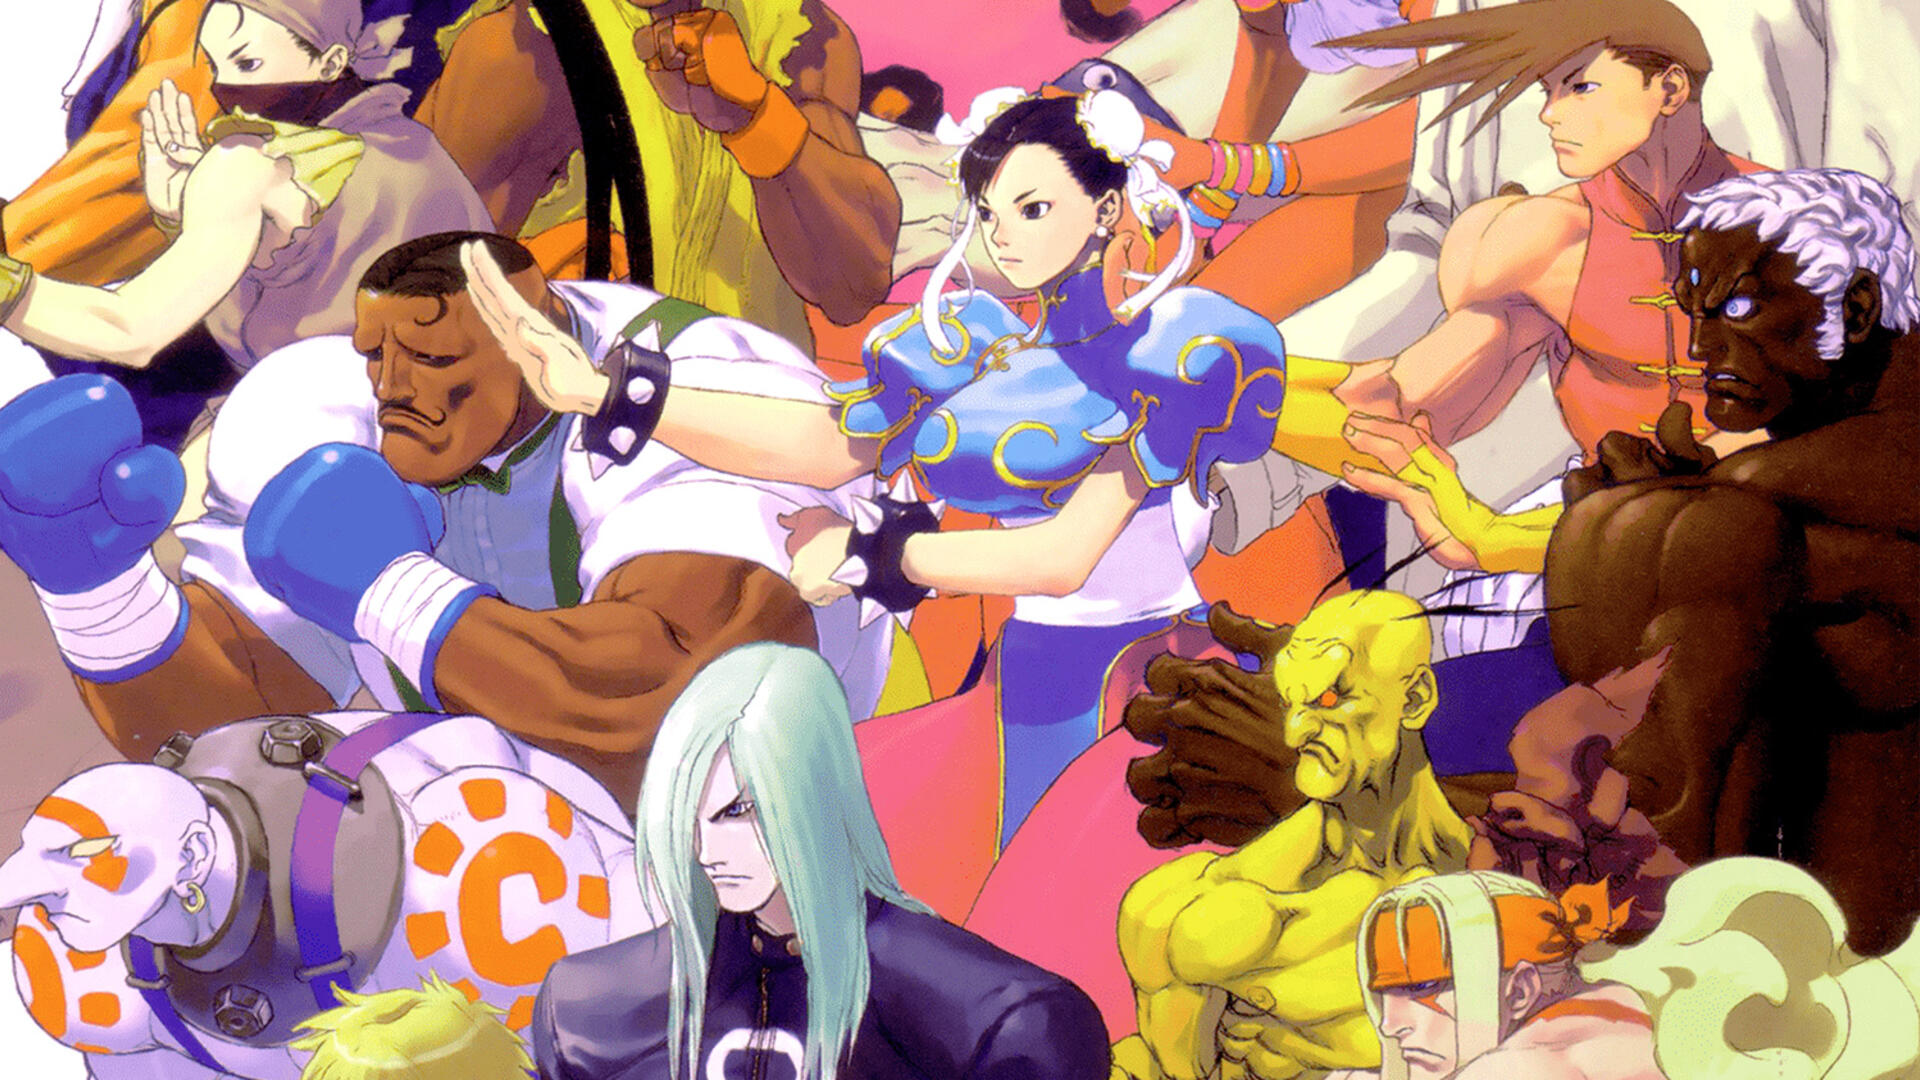 How a Parry Saved Street Fighter: 20 Years of 3rd Strike